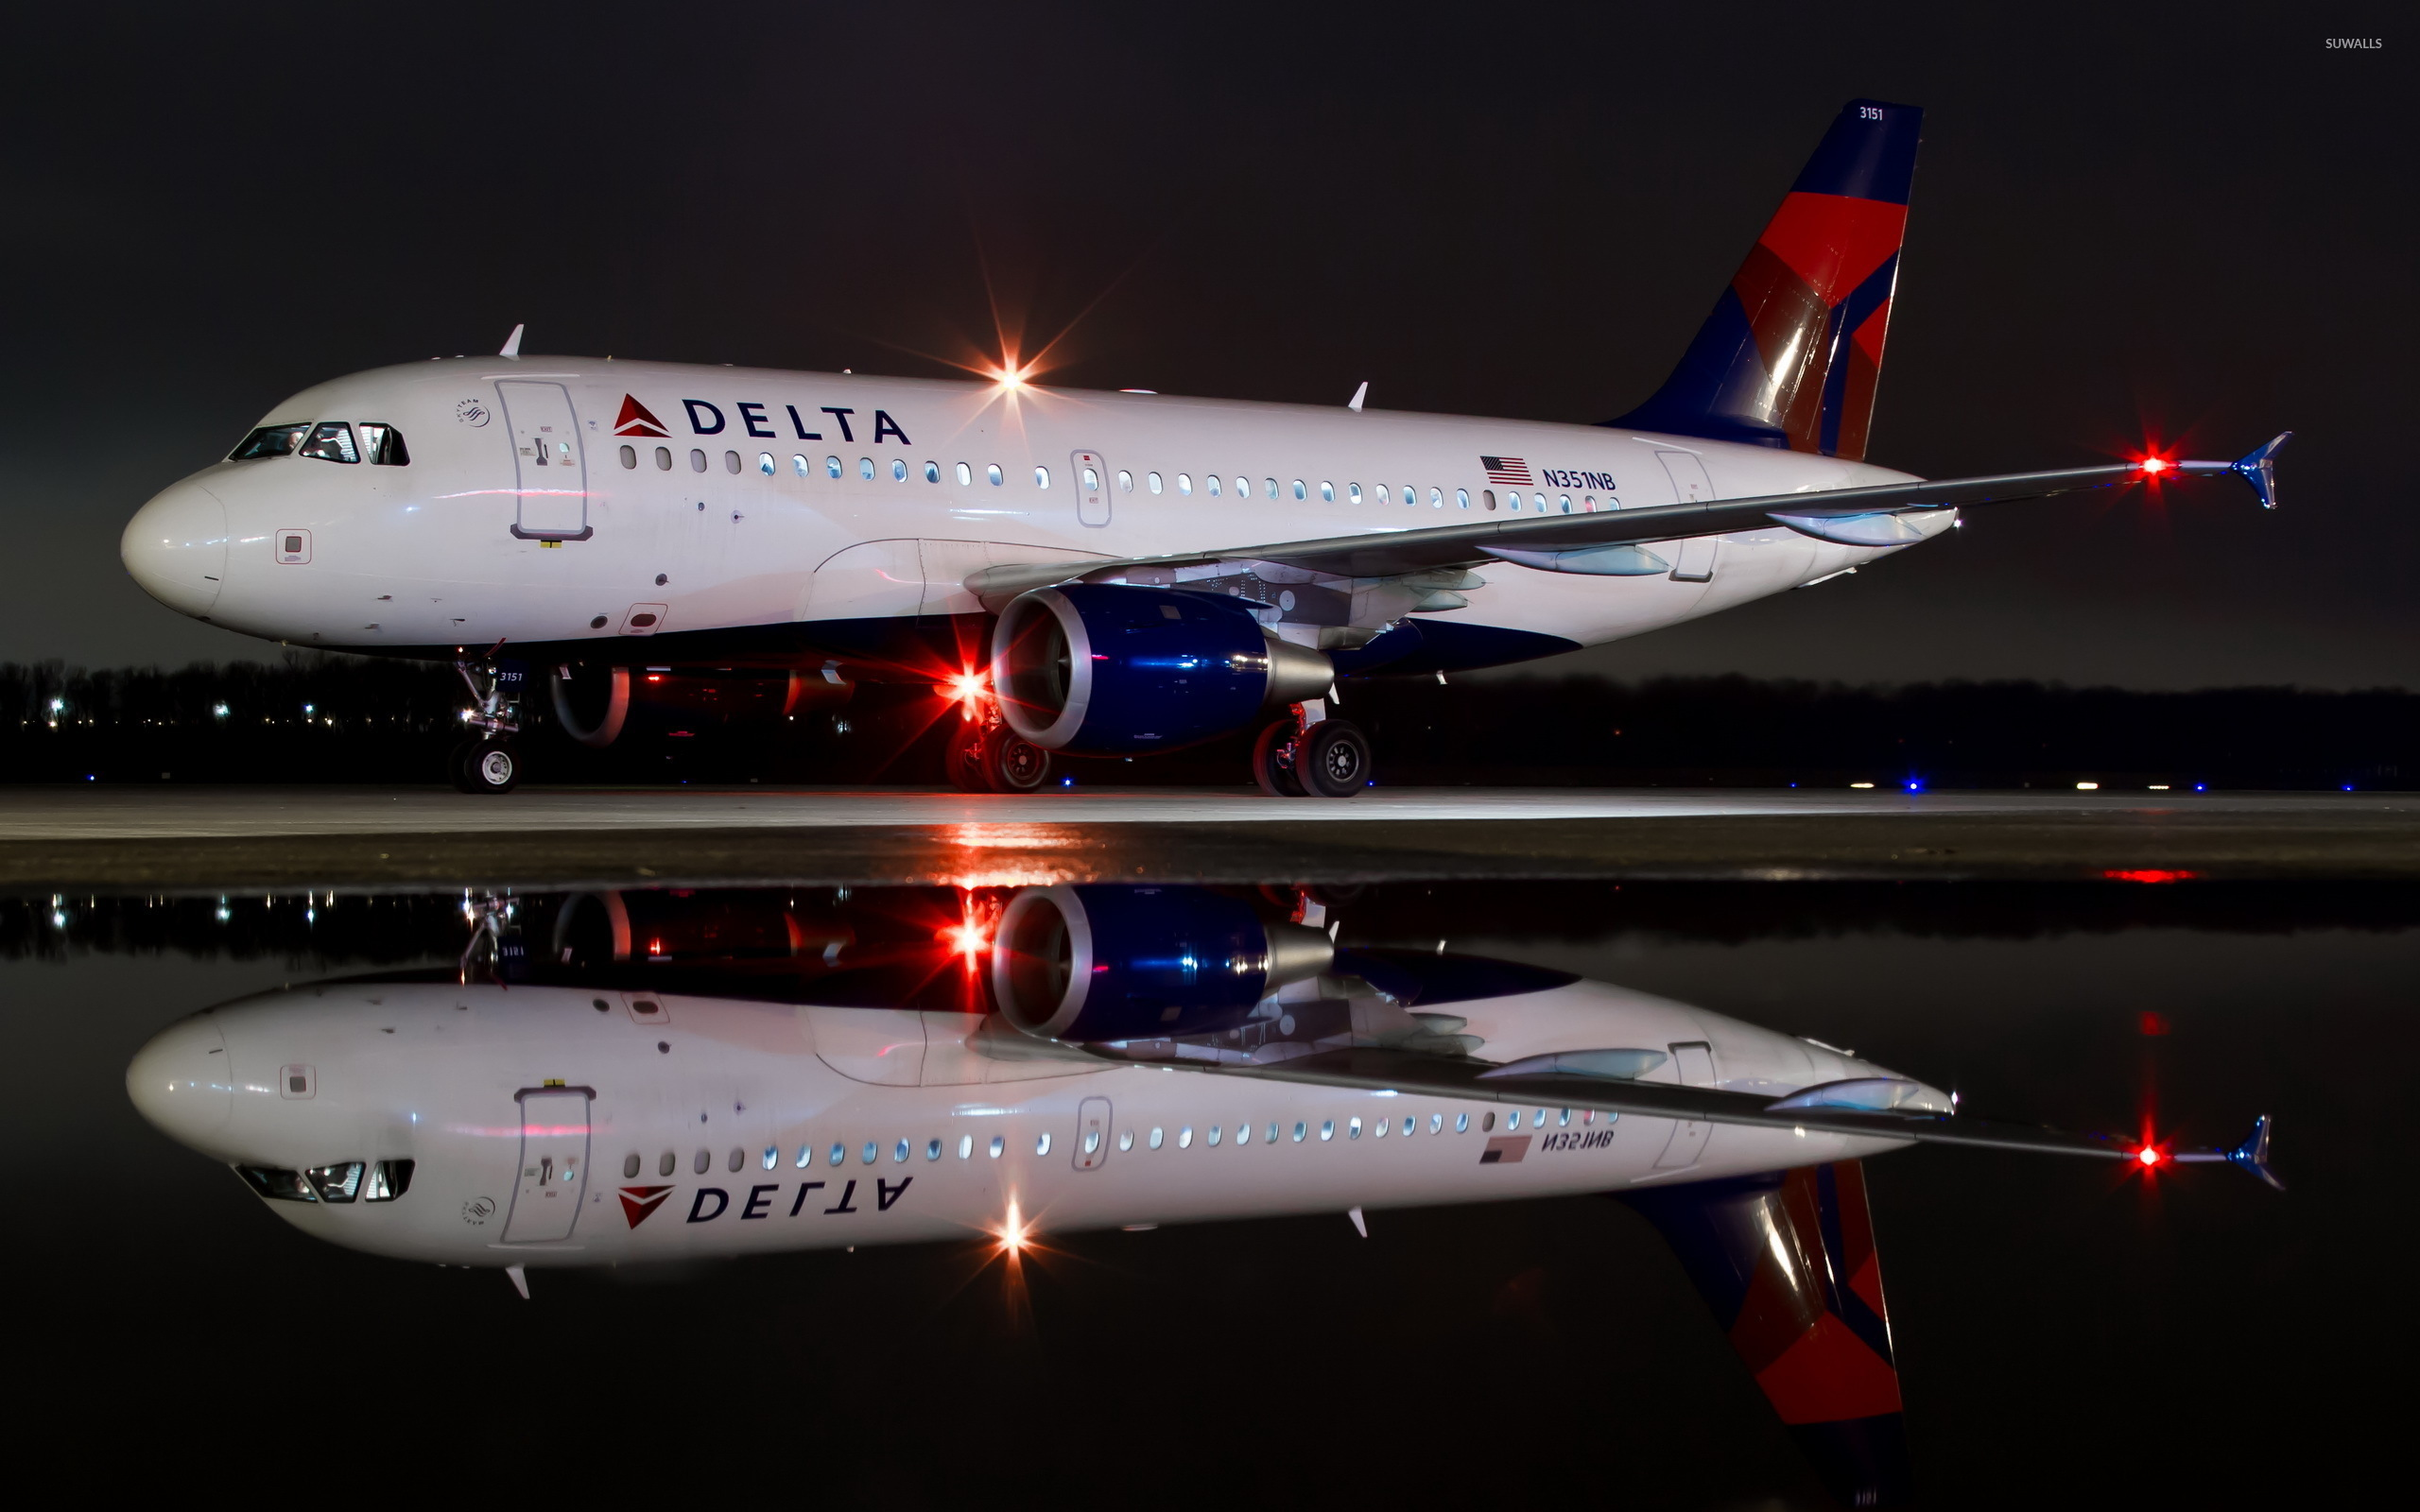 Great Wallpaper Night Airplane - delta-airbus-a319-at-night-48336-2560x1600  Collection.jpg